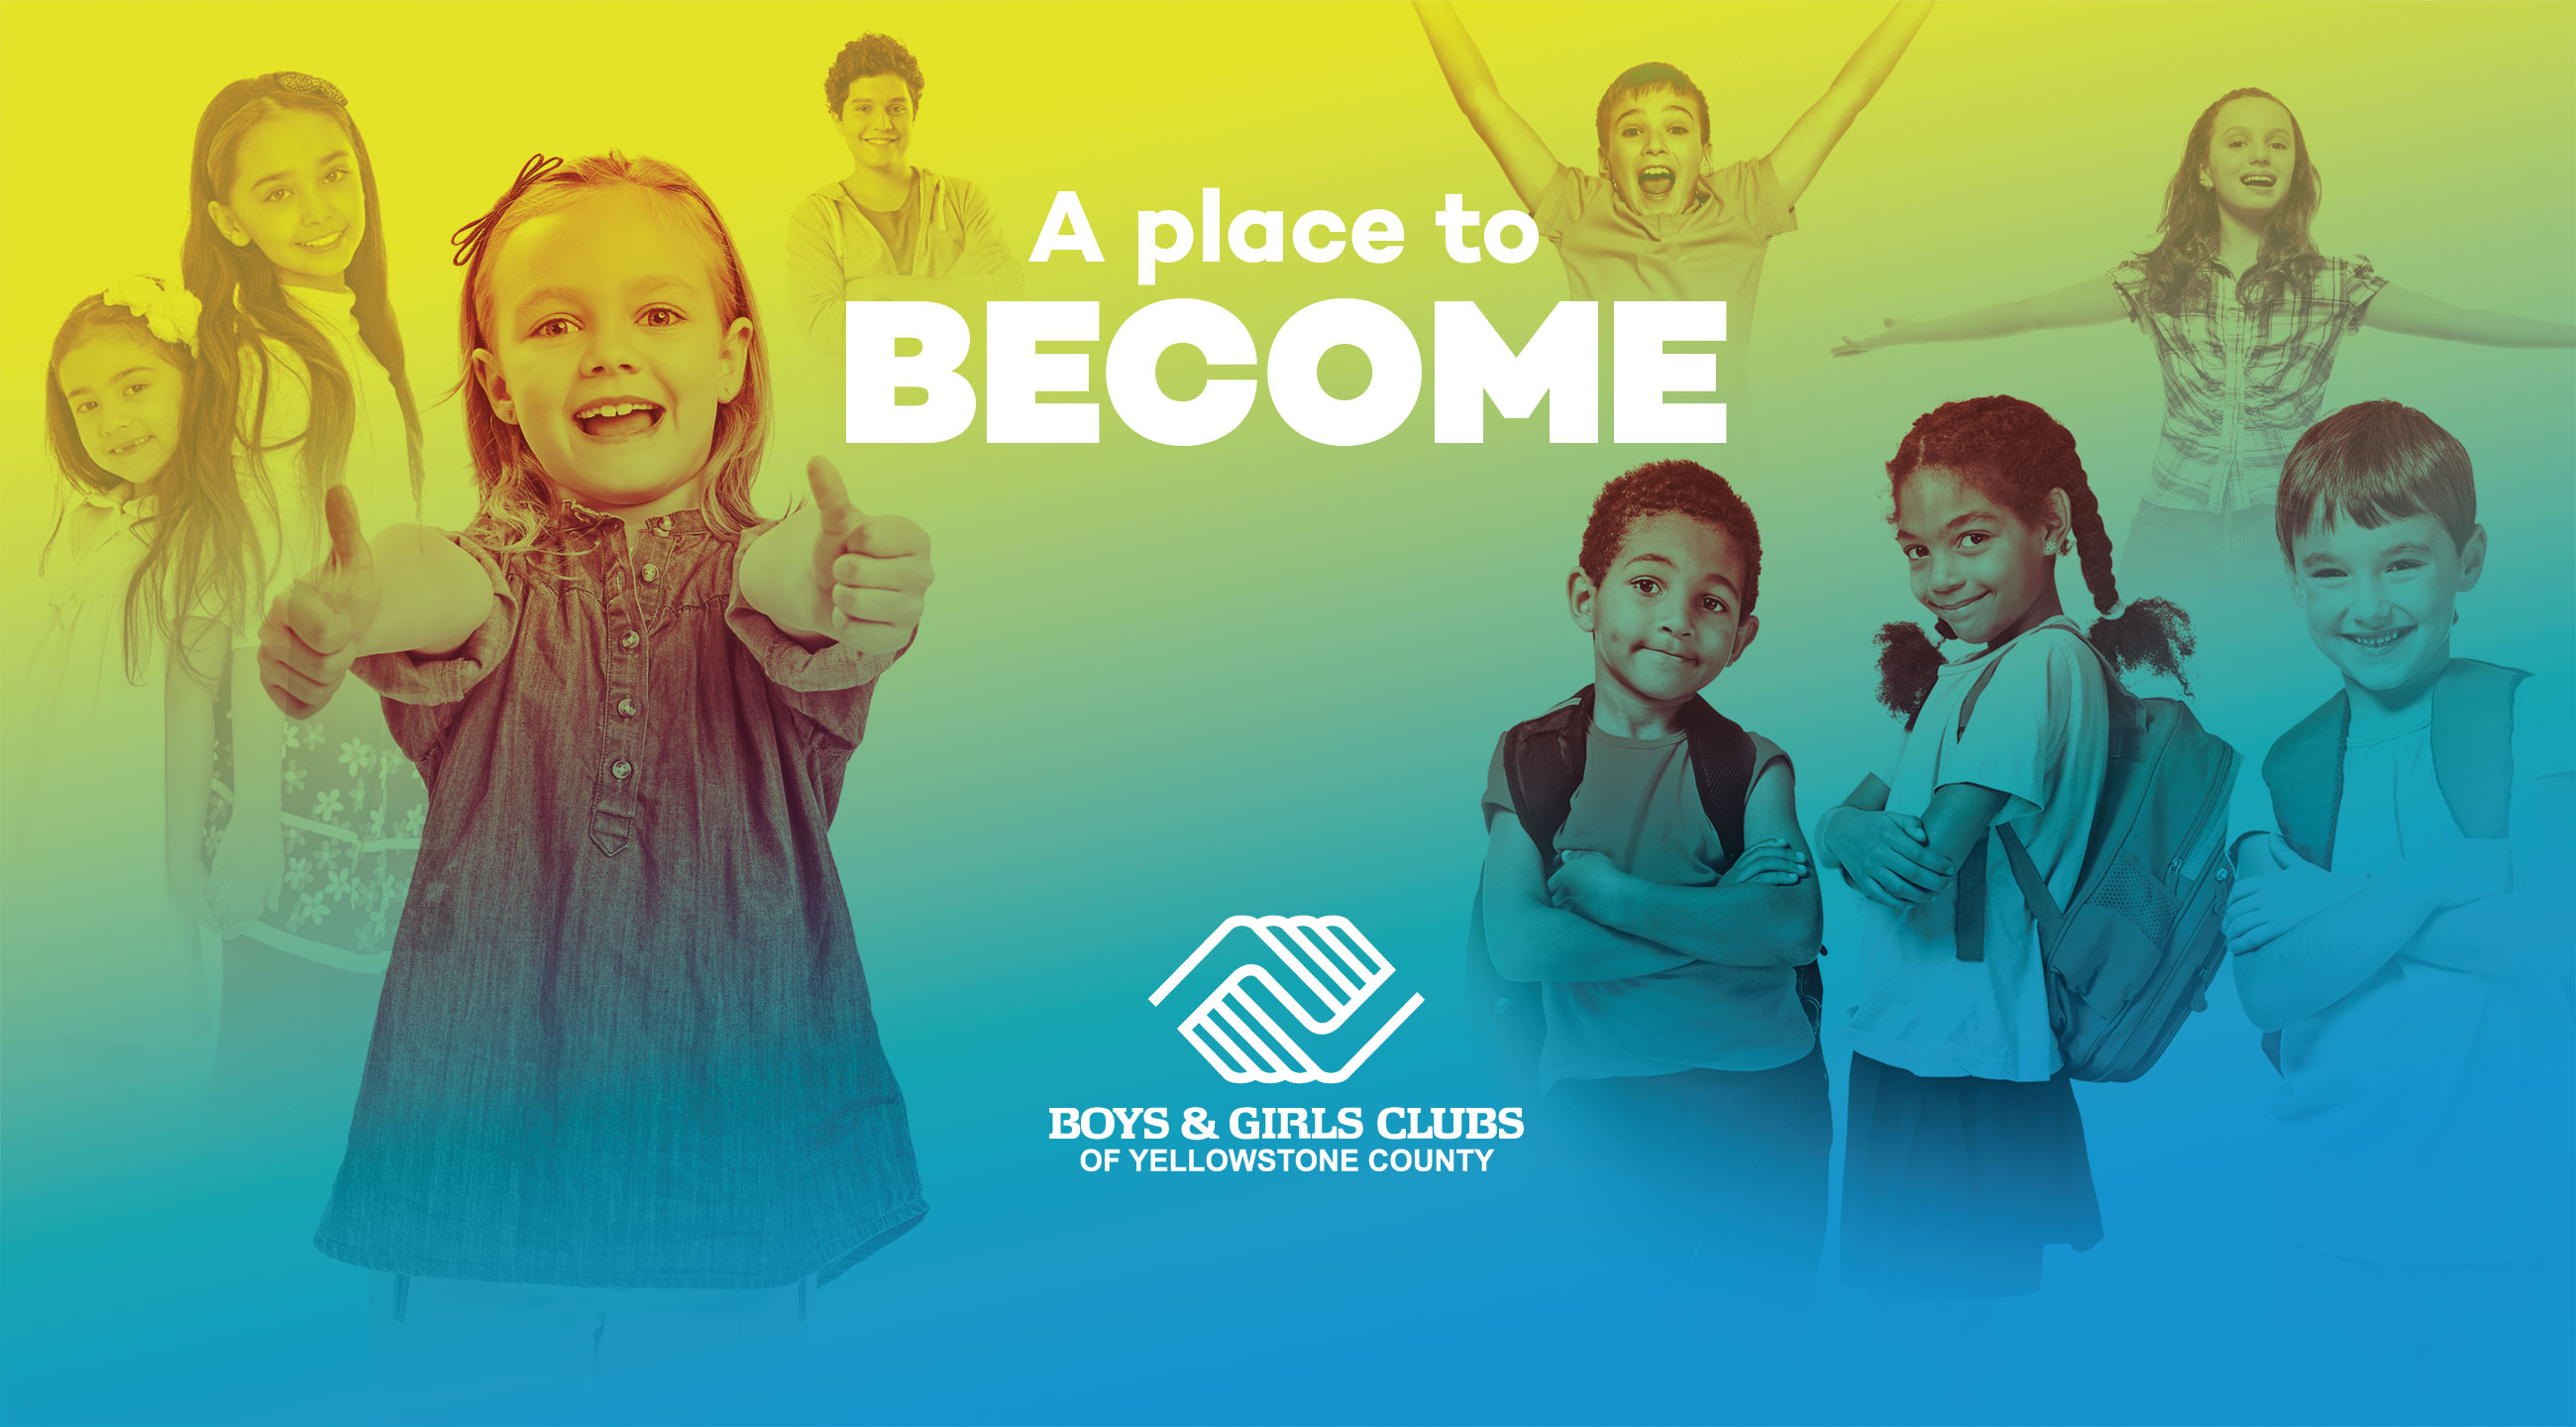 Boys and Girls Club of Yellowstone County - A Place to Become